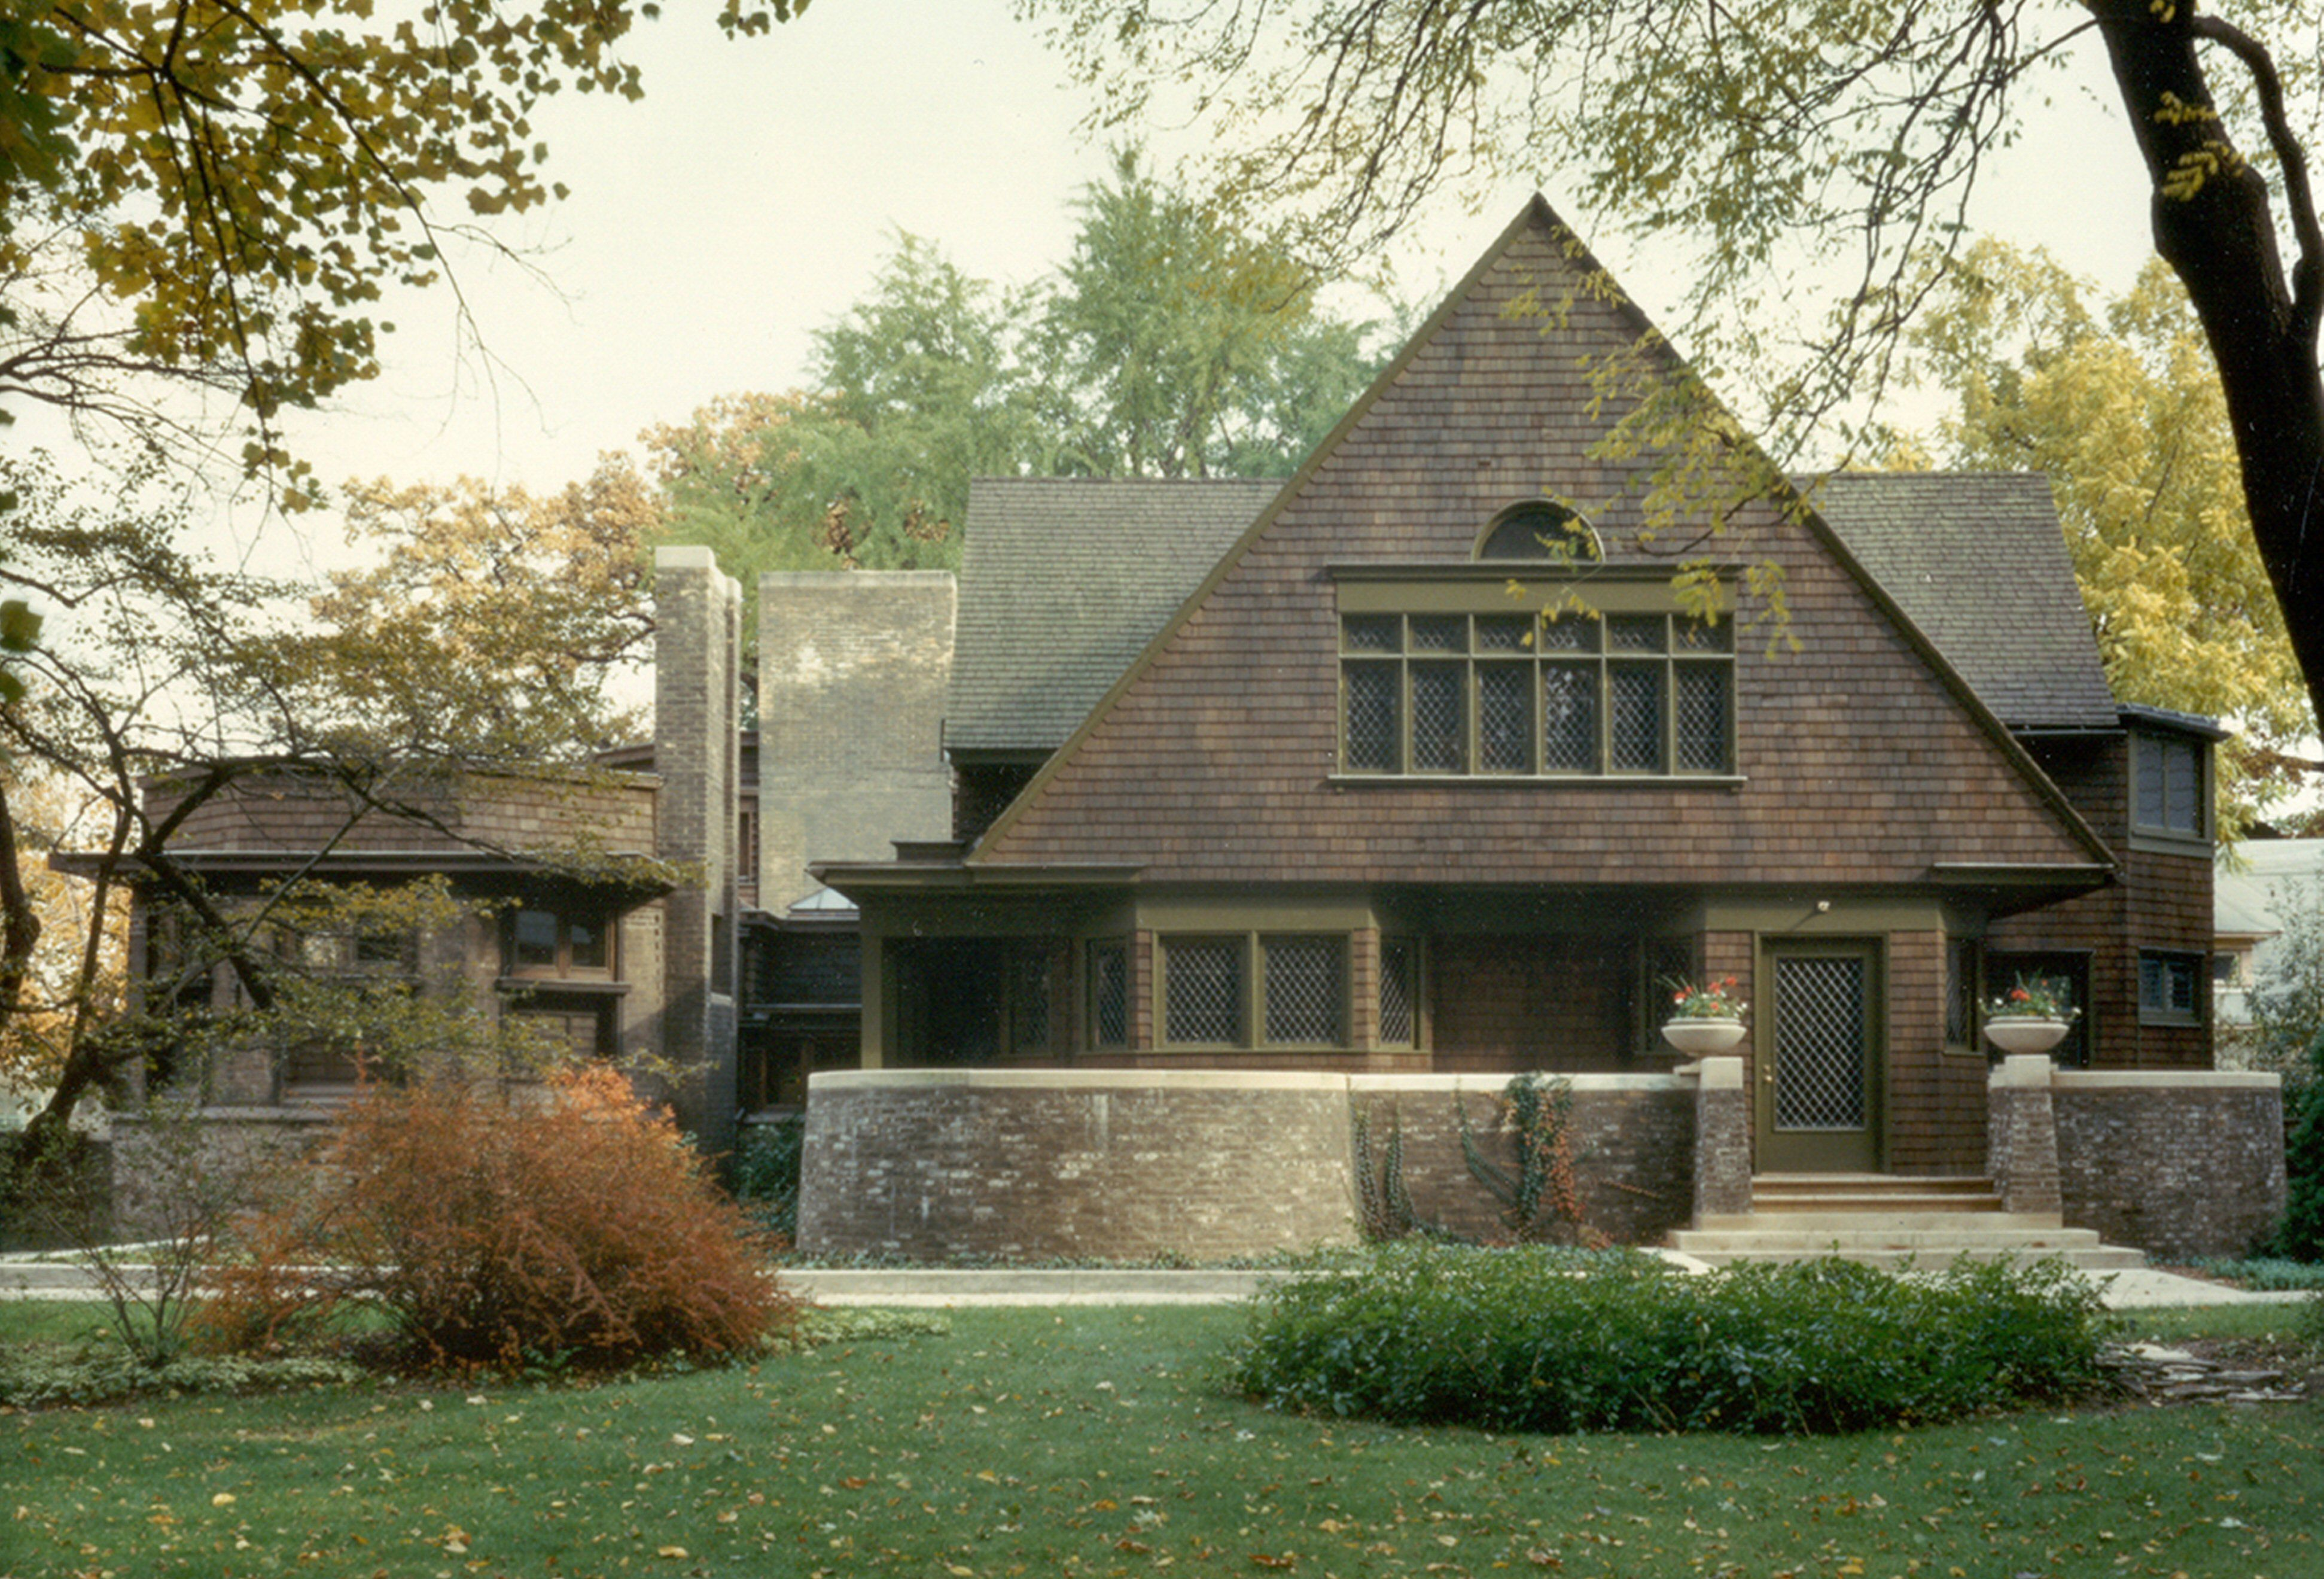 large front gable, brown shingles, large roof, curved stone wall